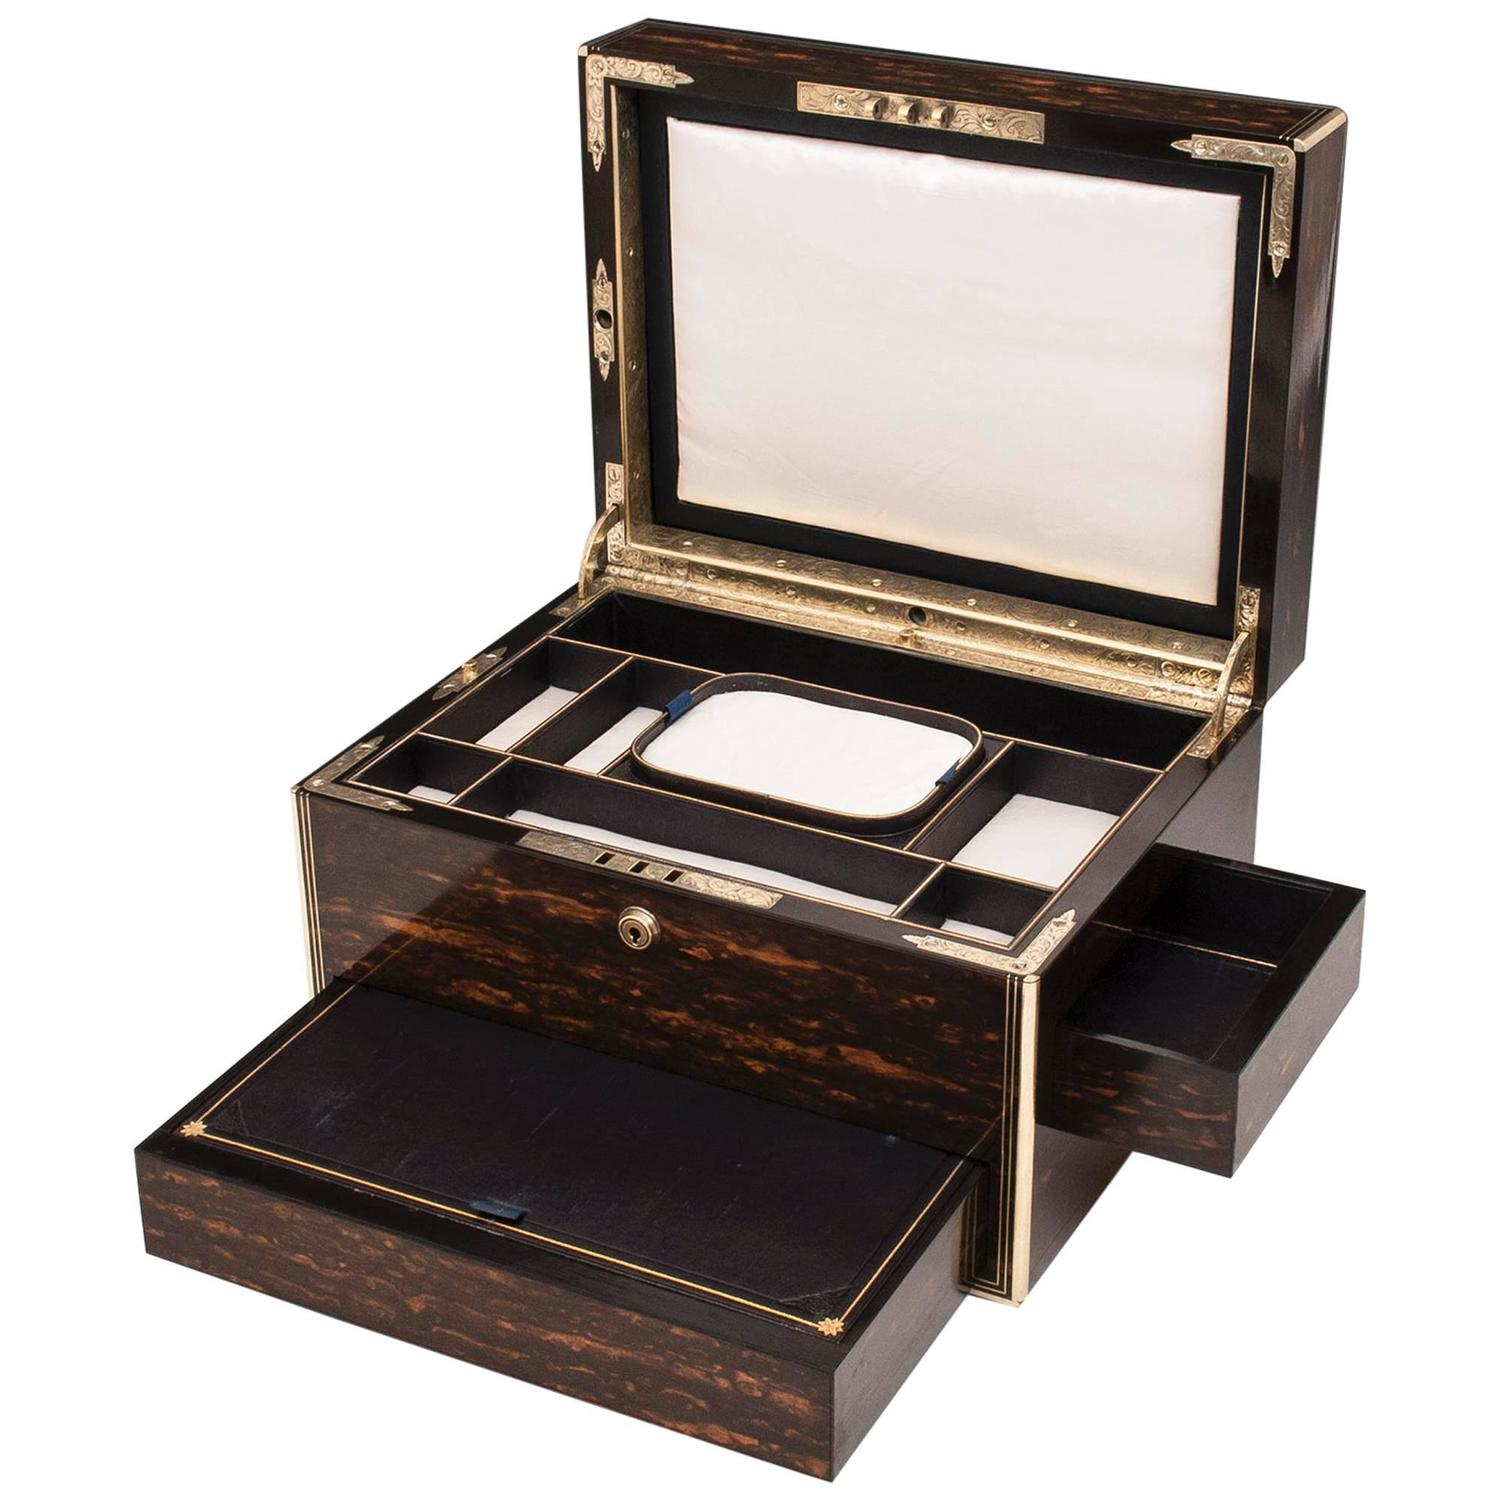 Antique coromandel jewellery box at 1stdibs for Furniture box